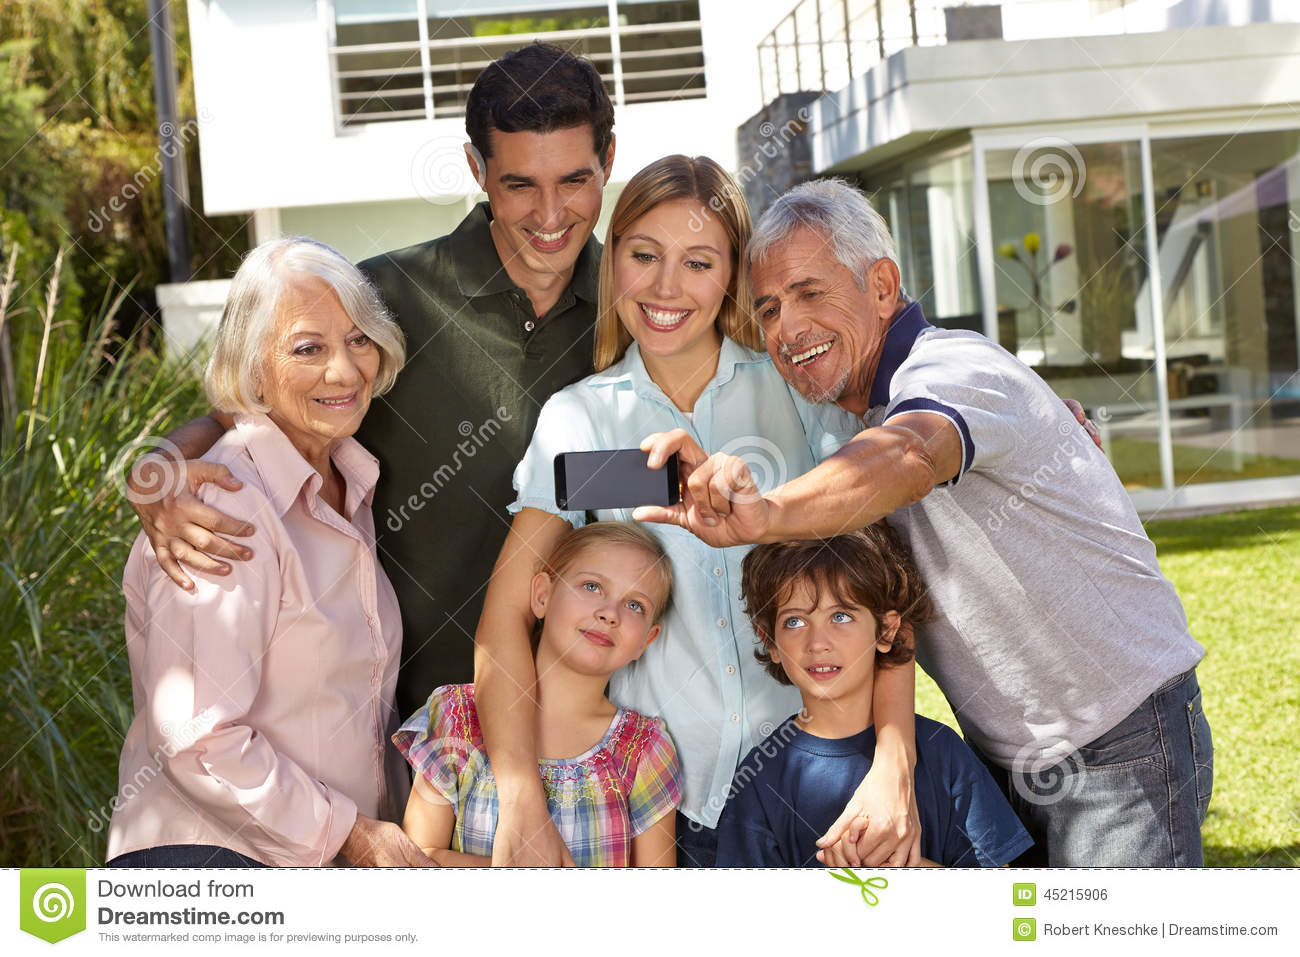 Selfie of family with children